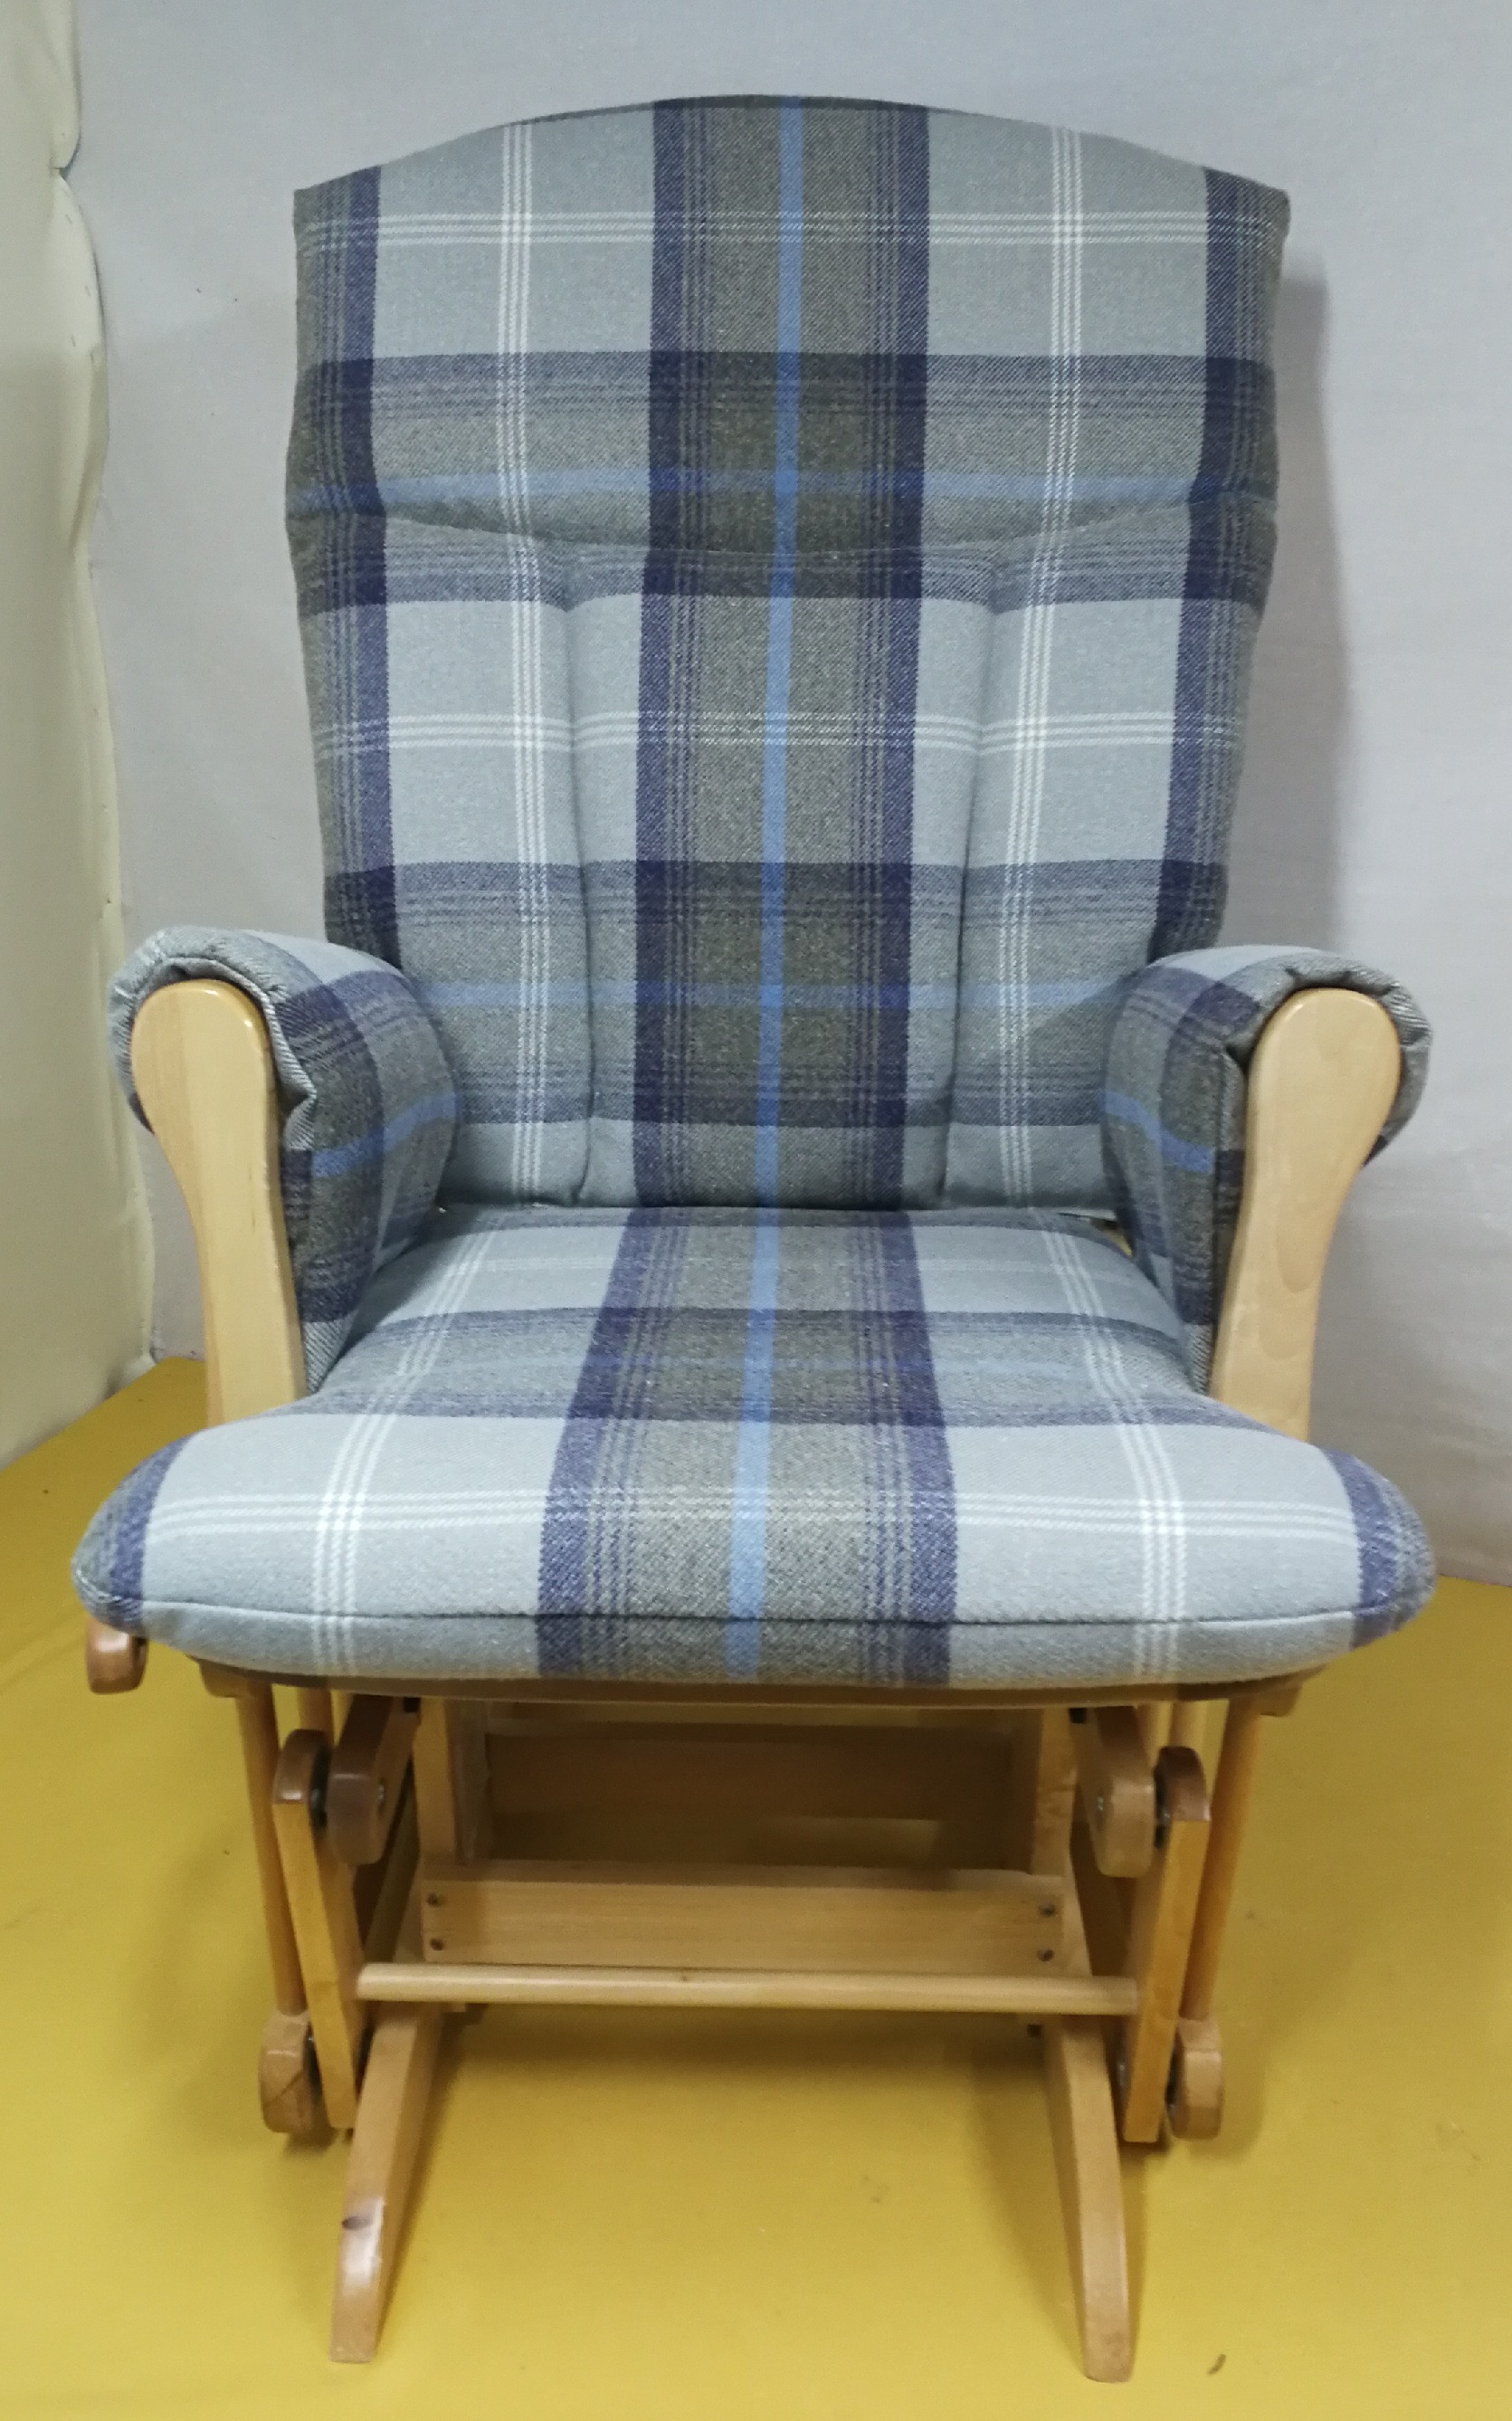 Nursery chair